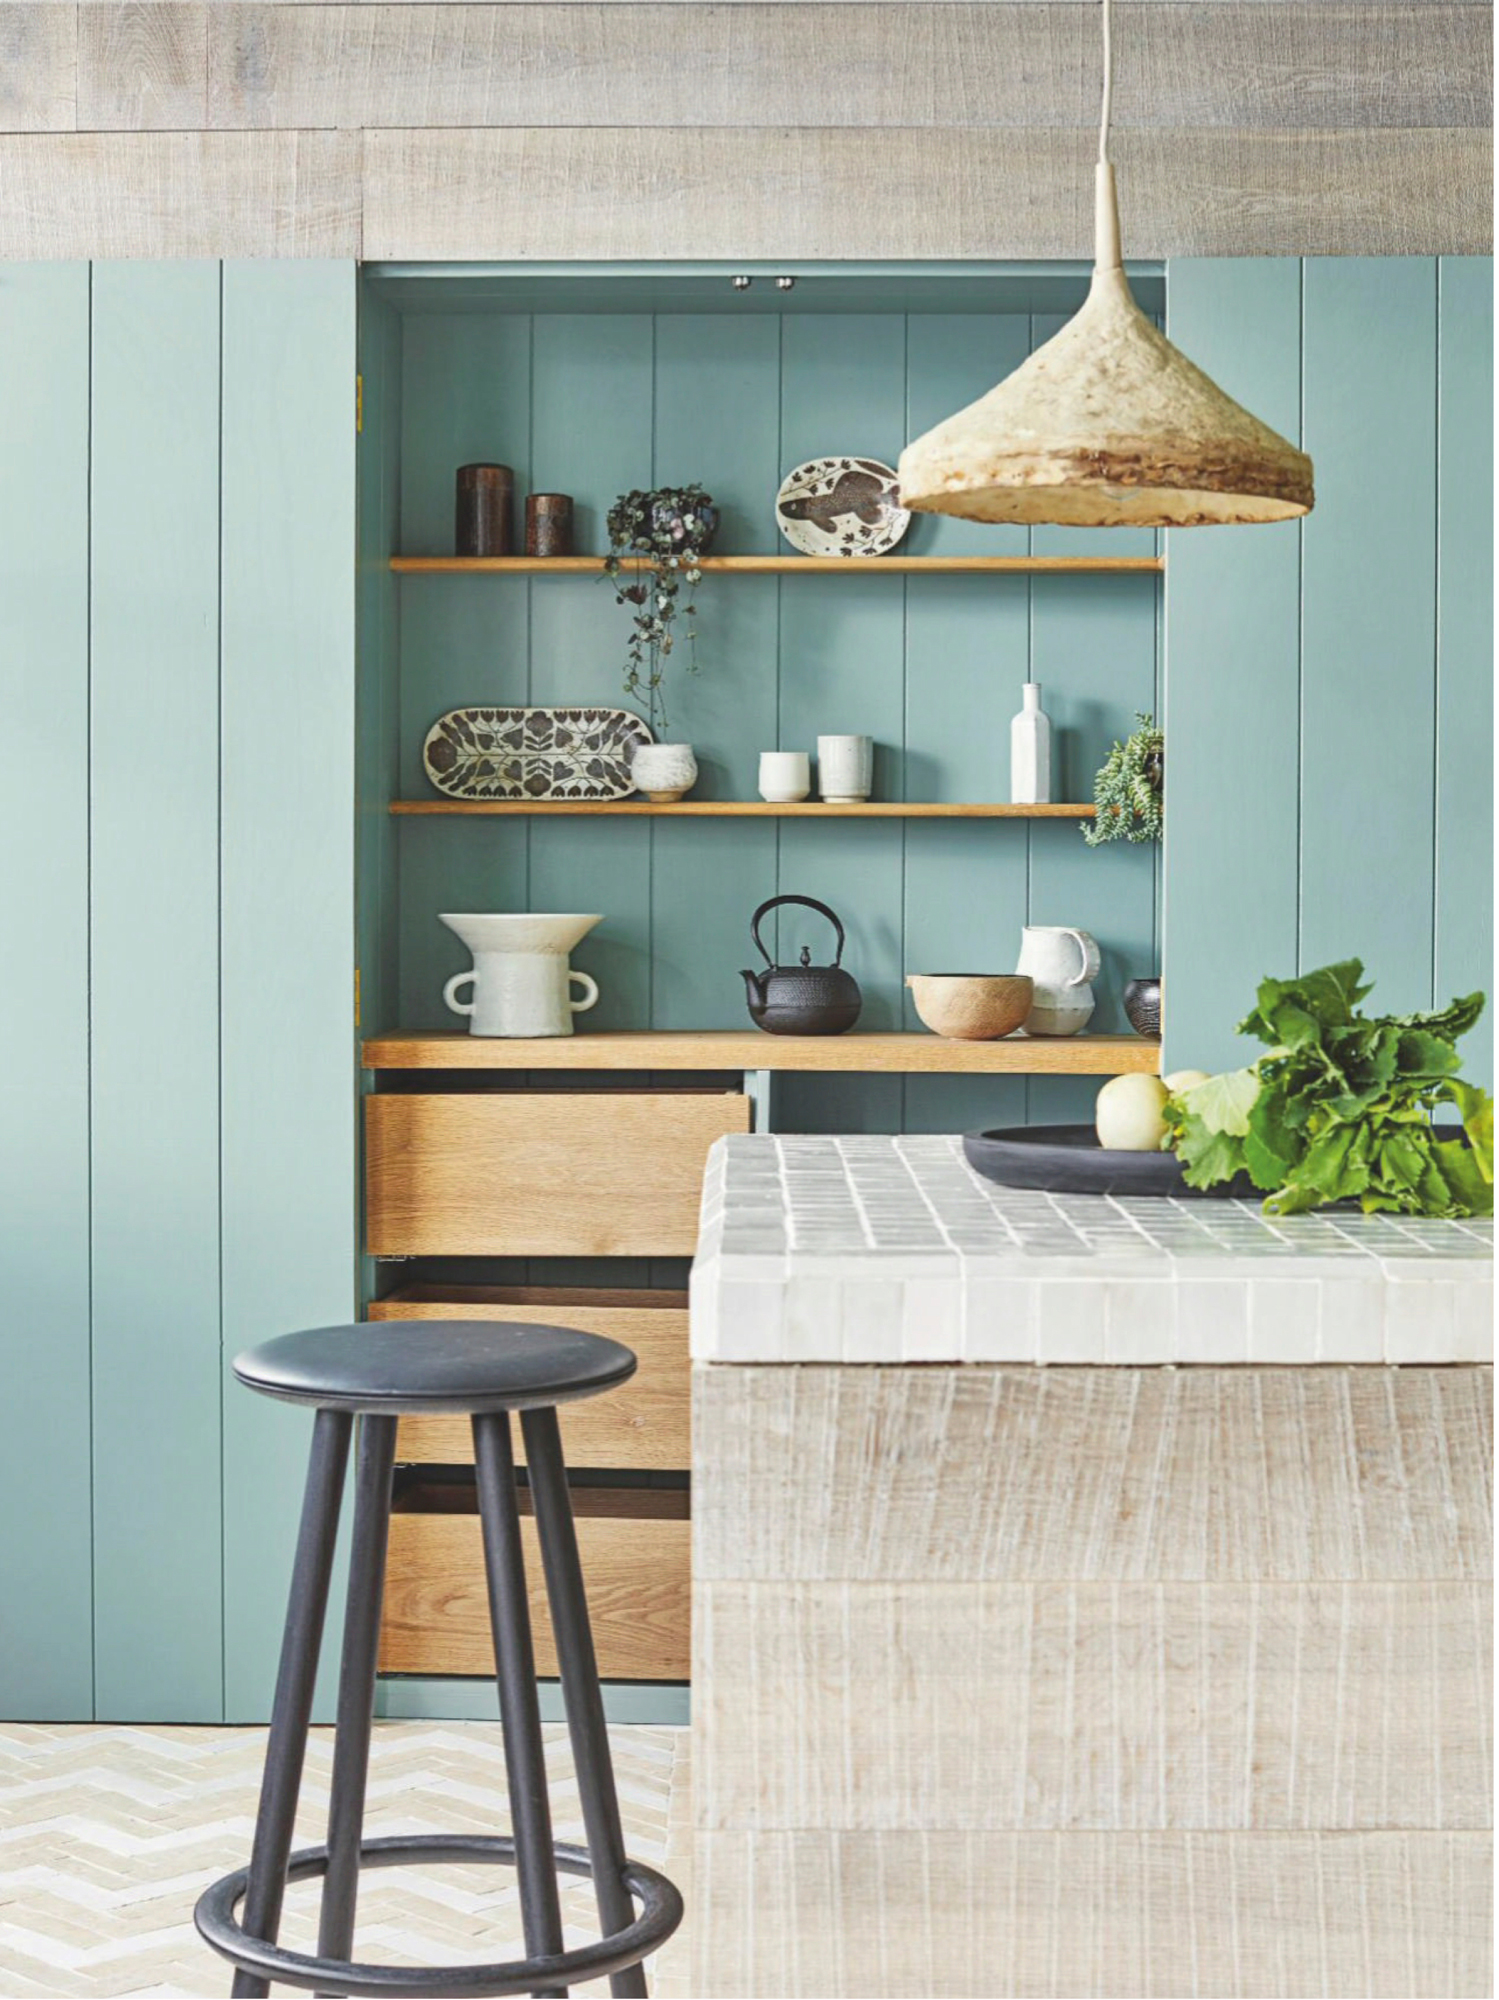 2019_Homes_And_Gardens_July_3.jpg